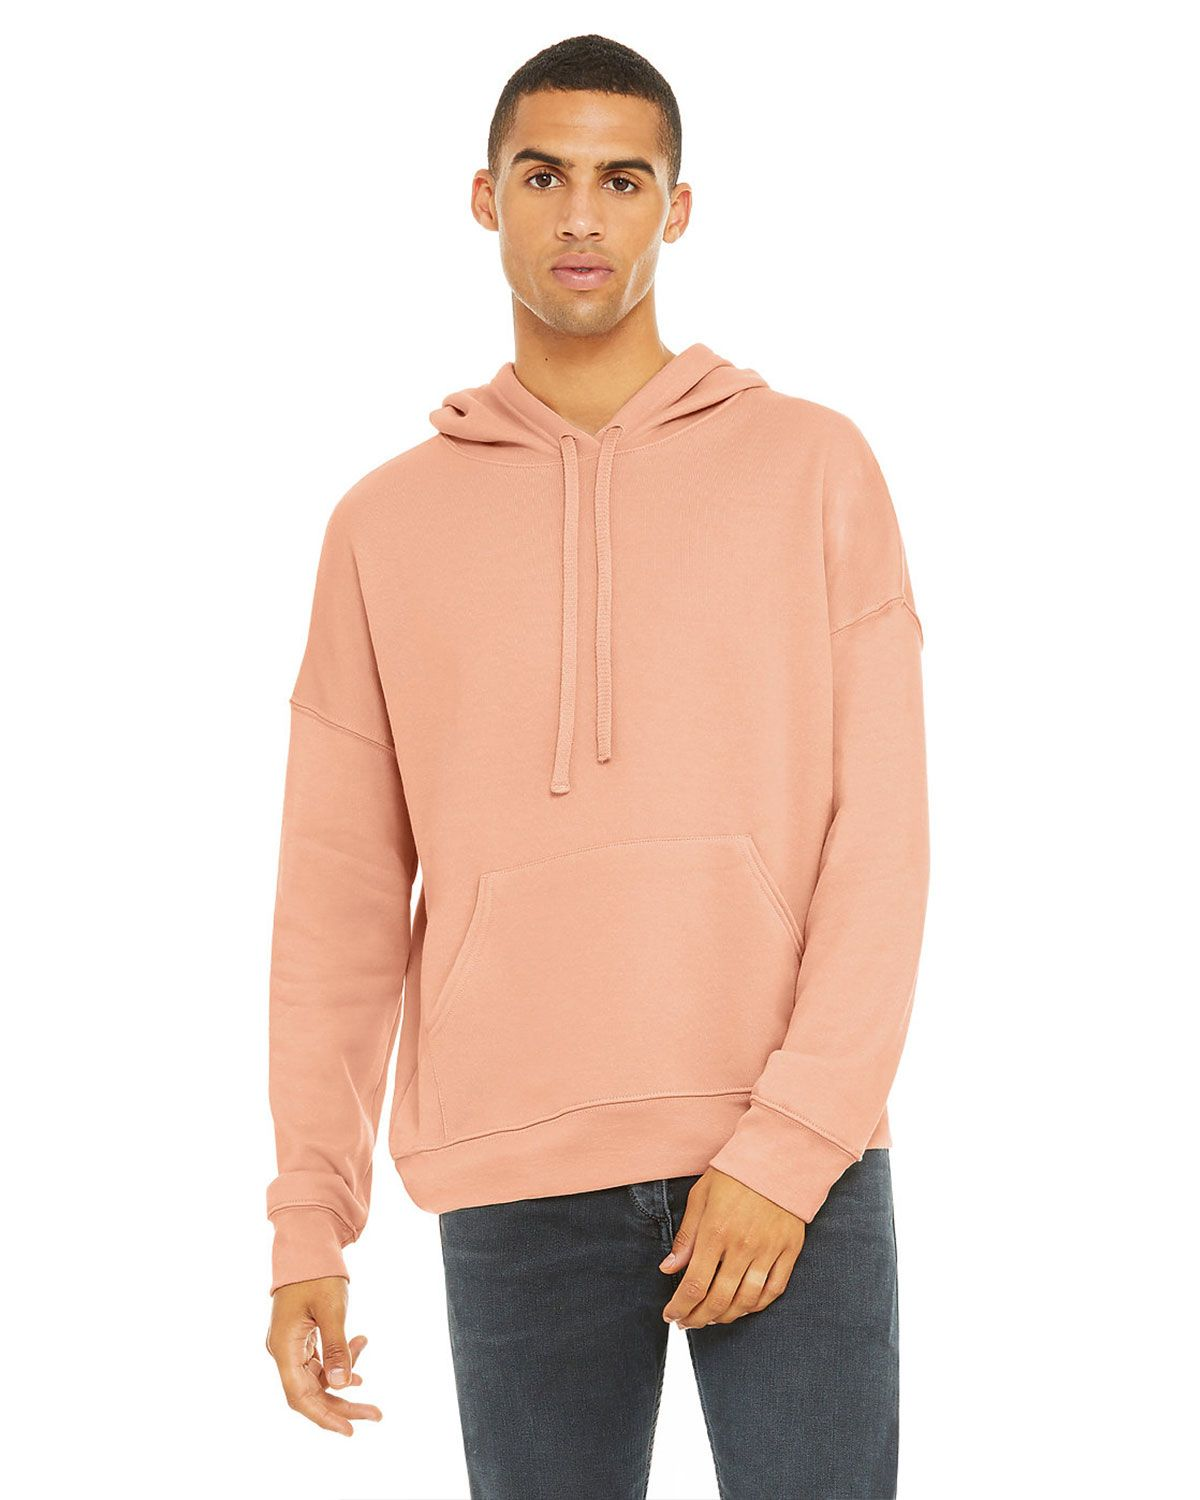 Bella + Canvas 3729 Unisex Sponge Fleece Pullover Hoodie - Peach - XS from Bella + Canvas